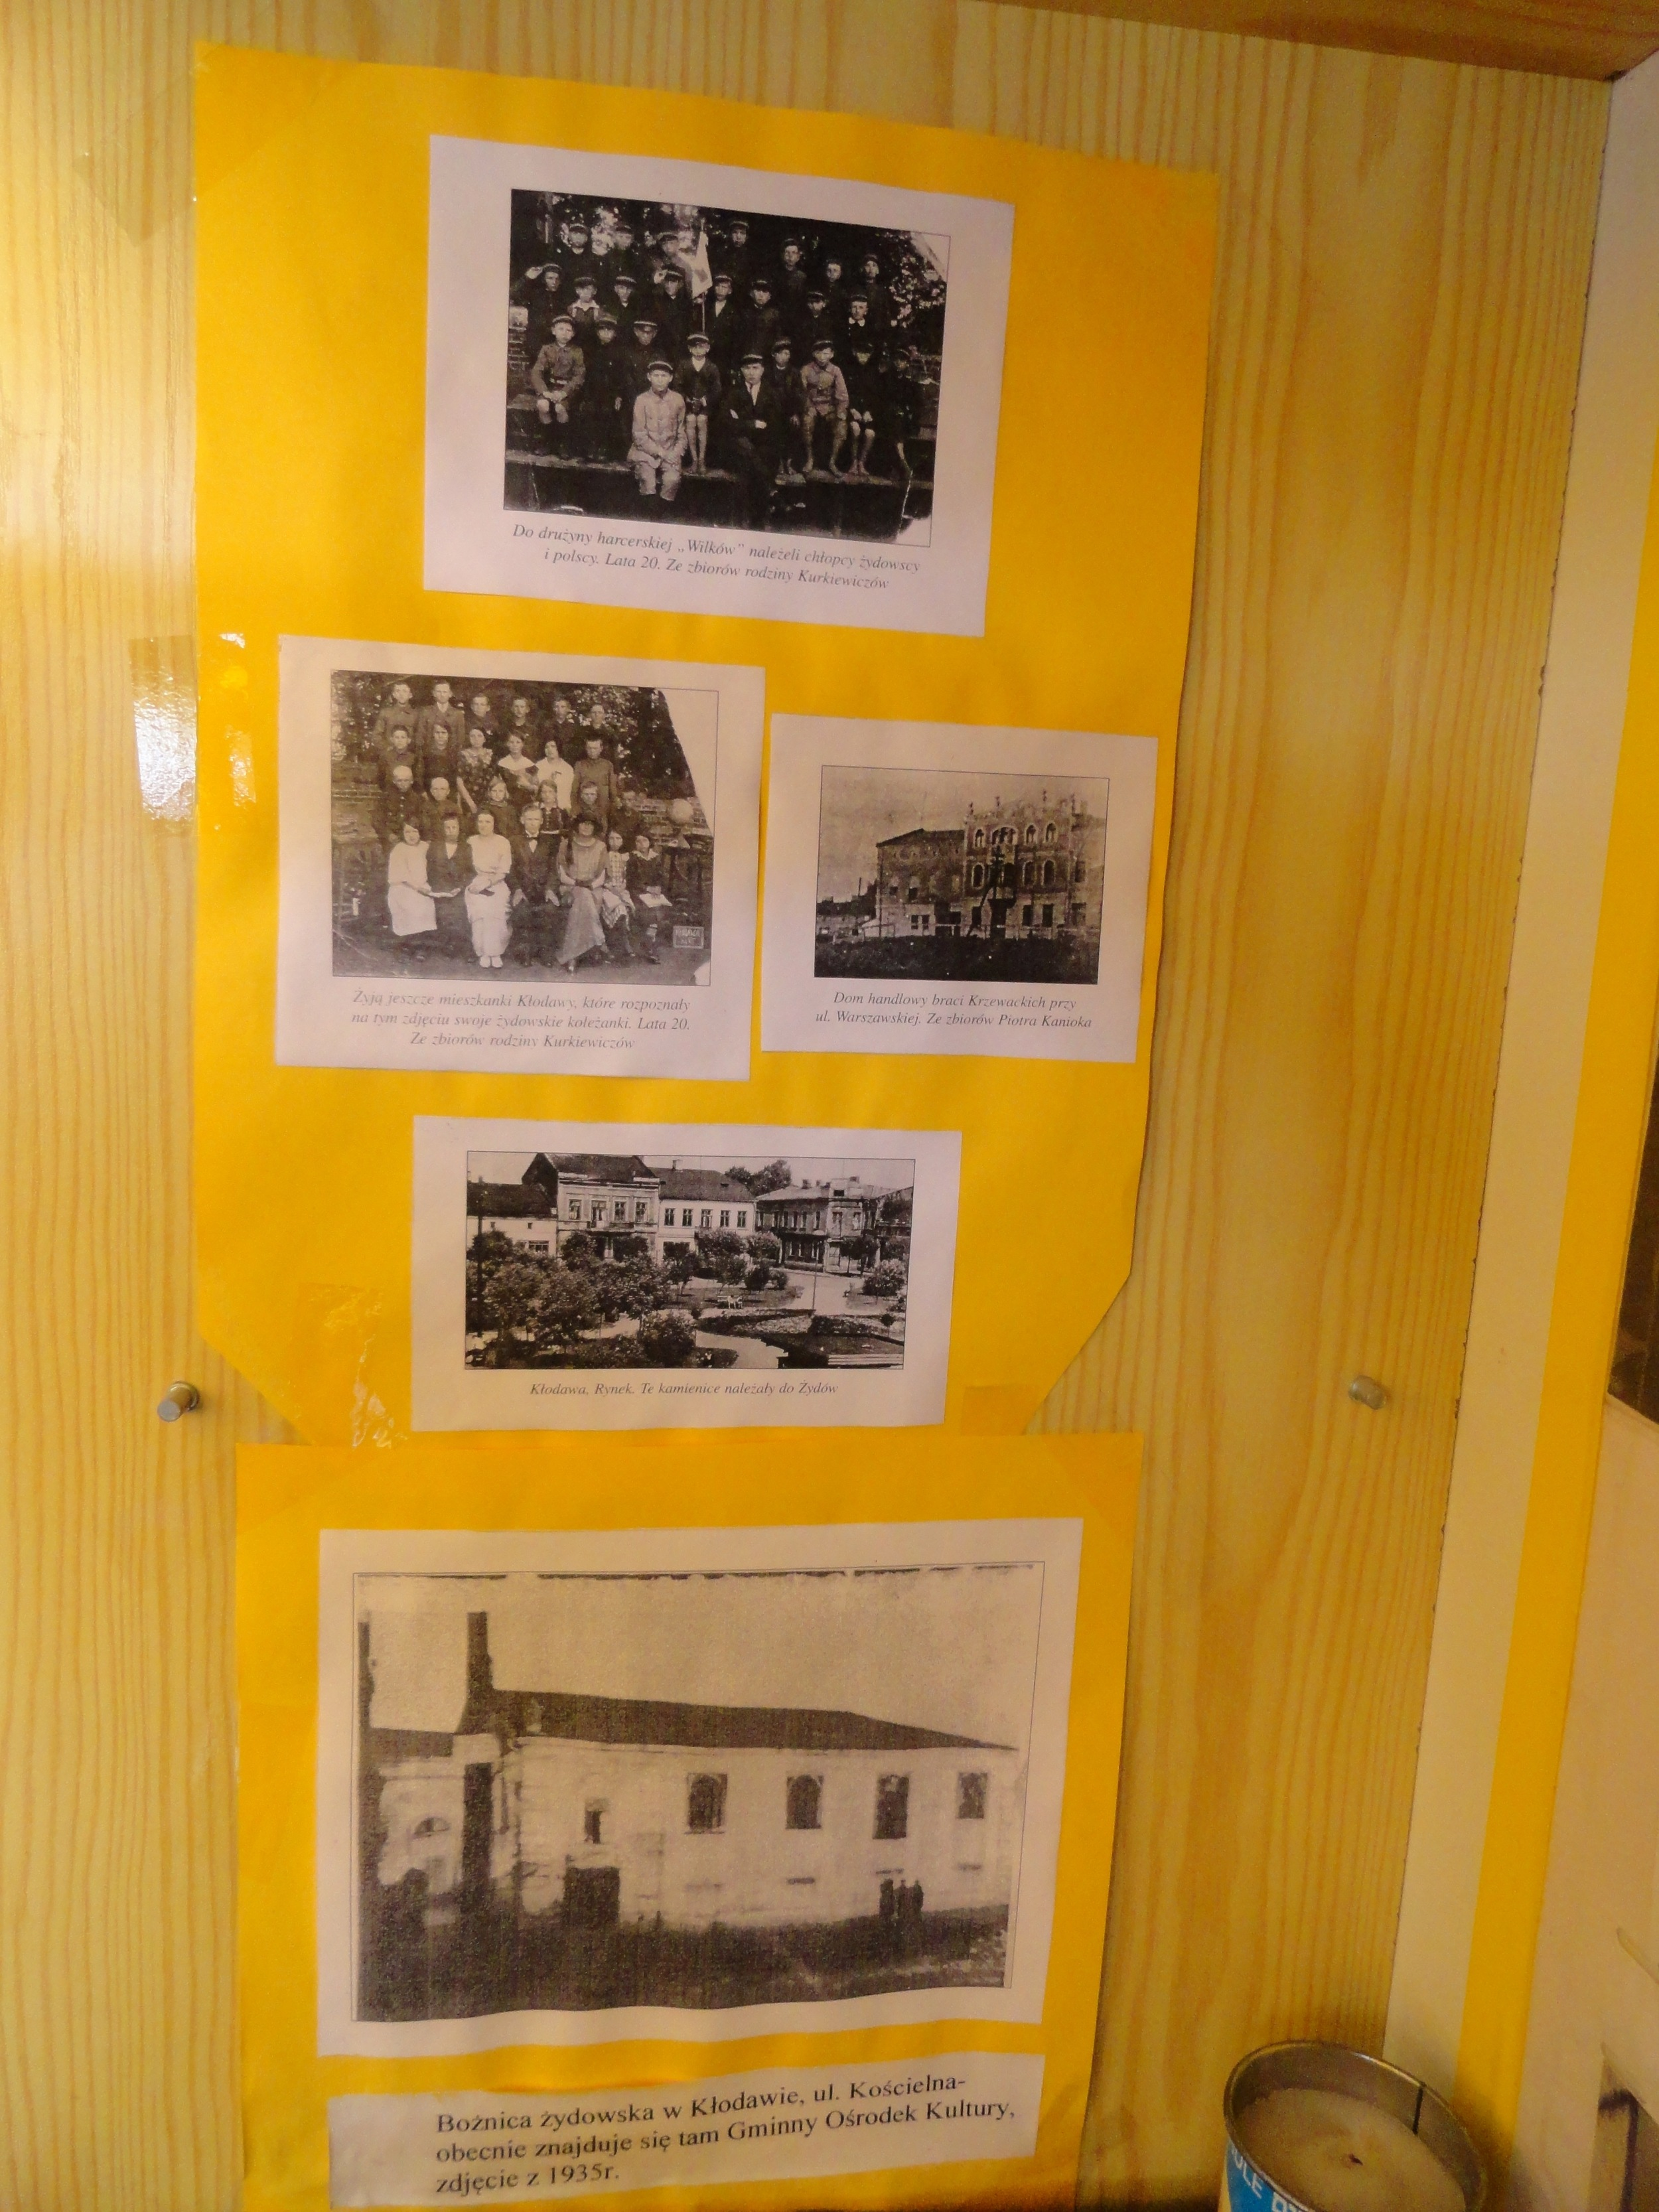 Pictures of Jewish and Christian children attending school together, 1920s? At bottom picture of synagogue.